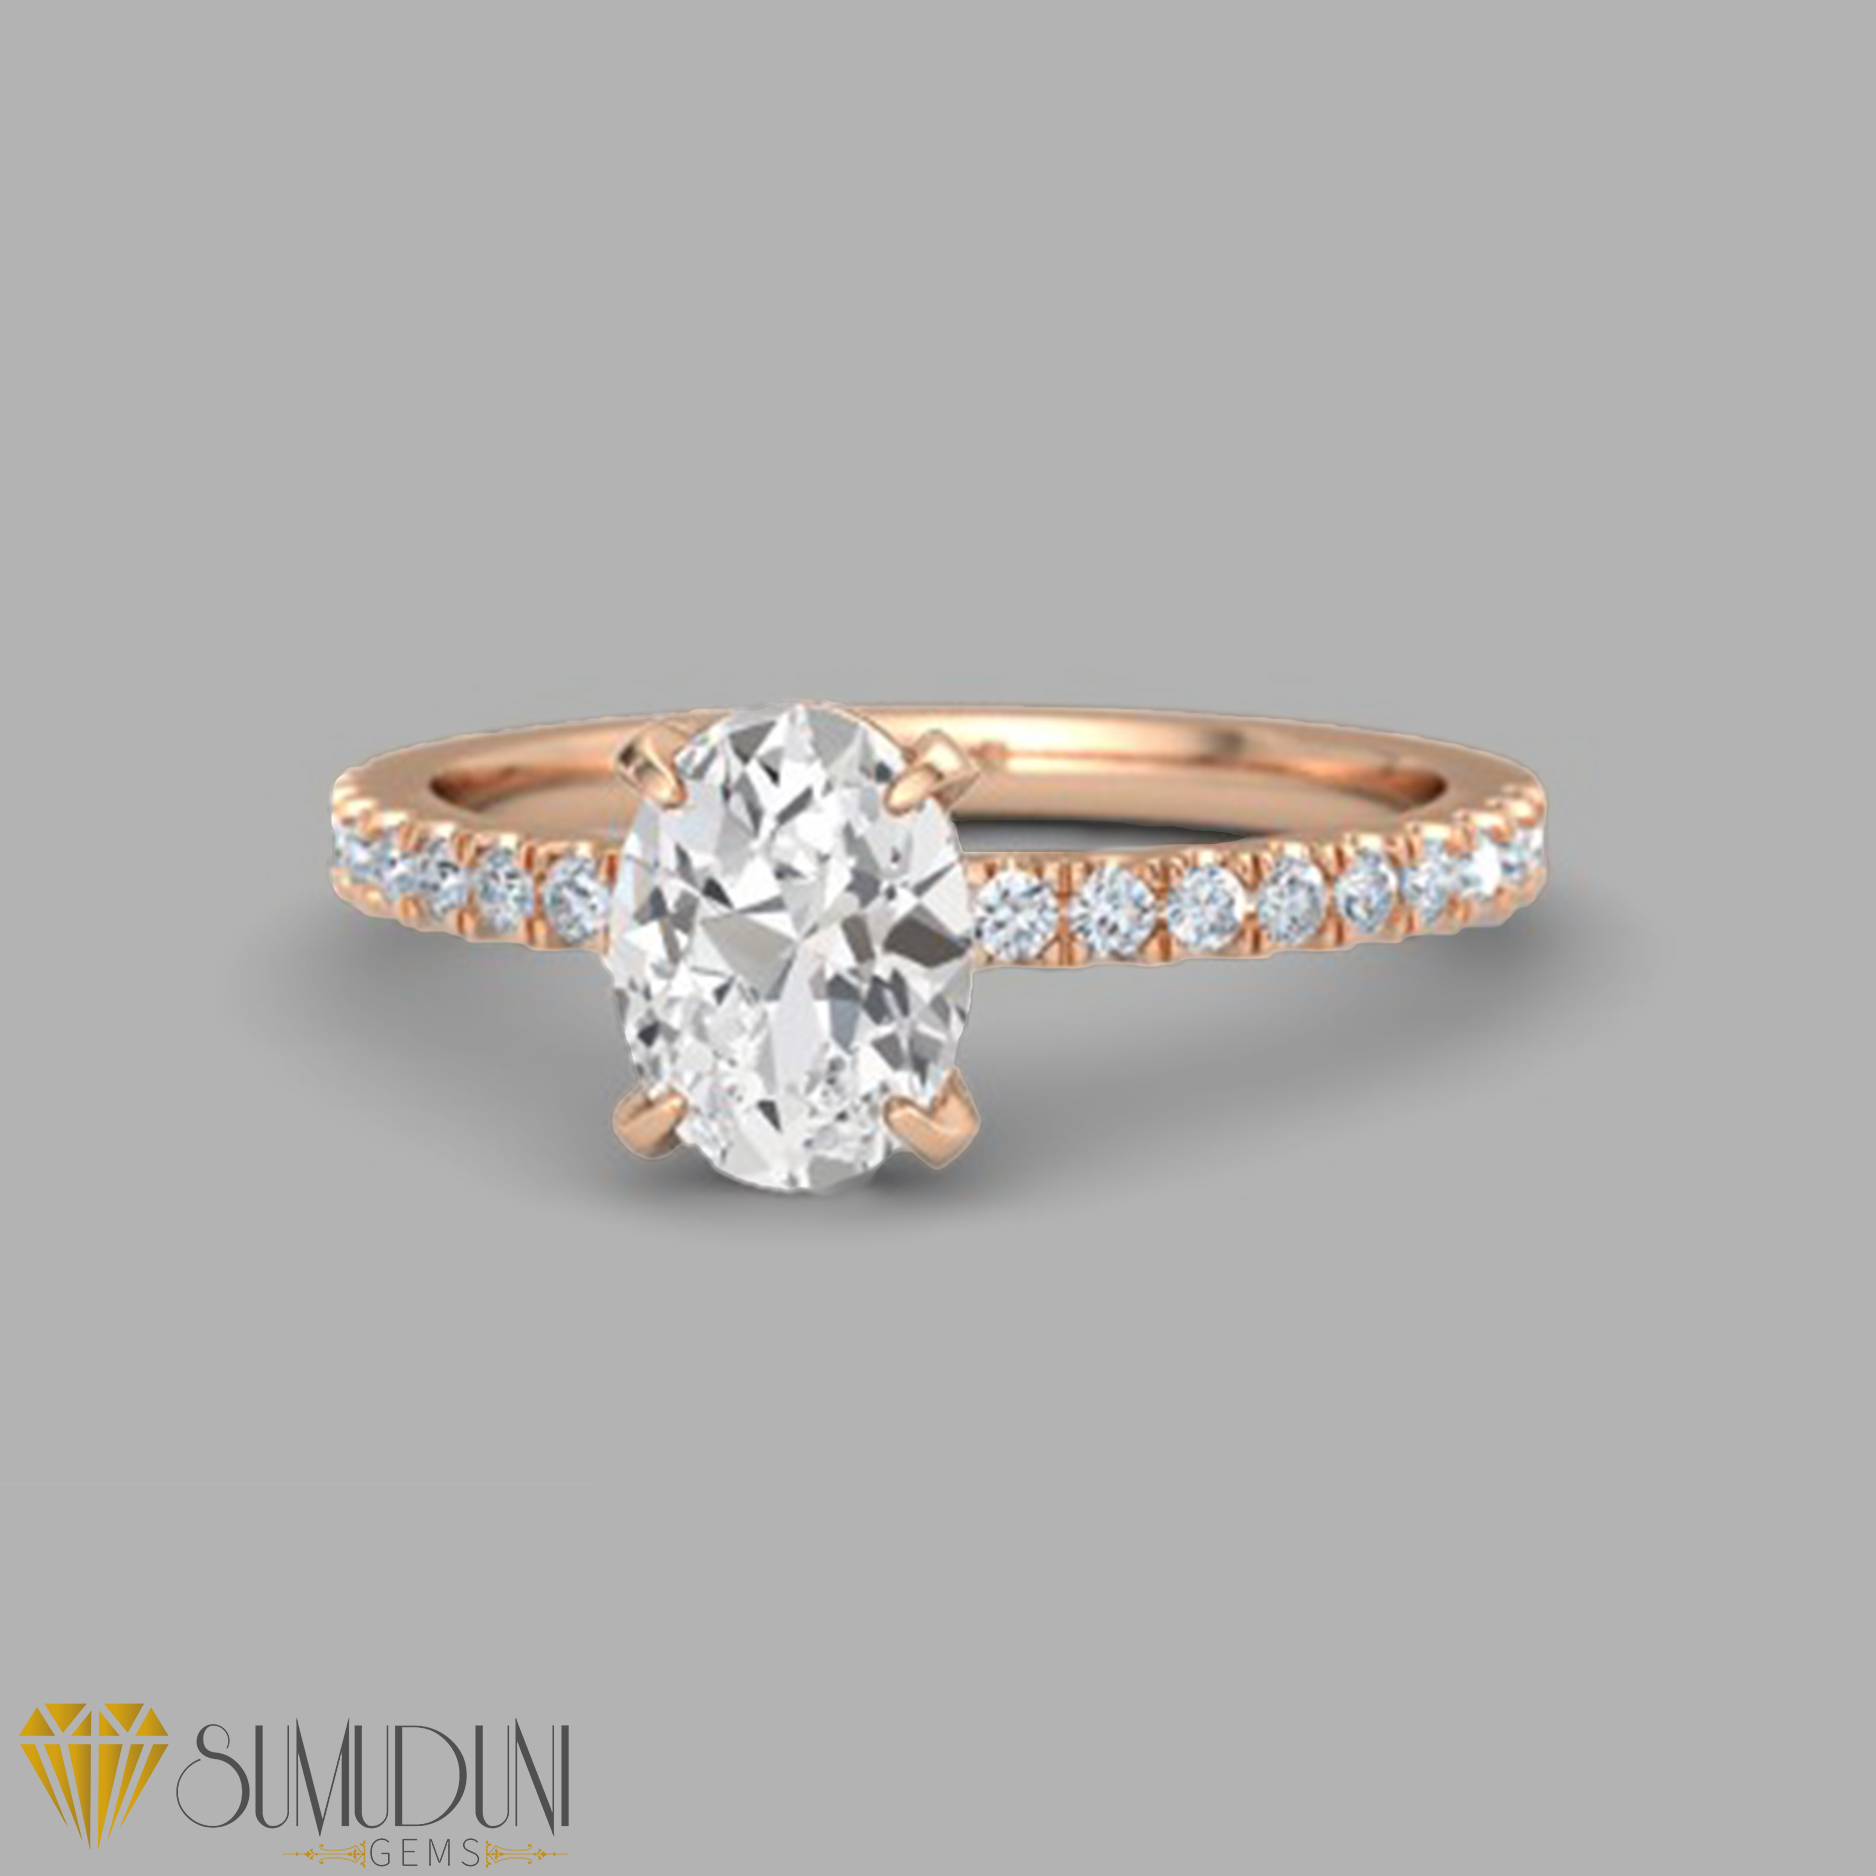 2 Carat White Sapphire Engagement Ring In Rose Gold,Modern White Kitchen Cabinets With Grey Countertops